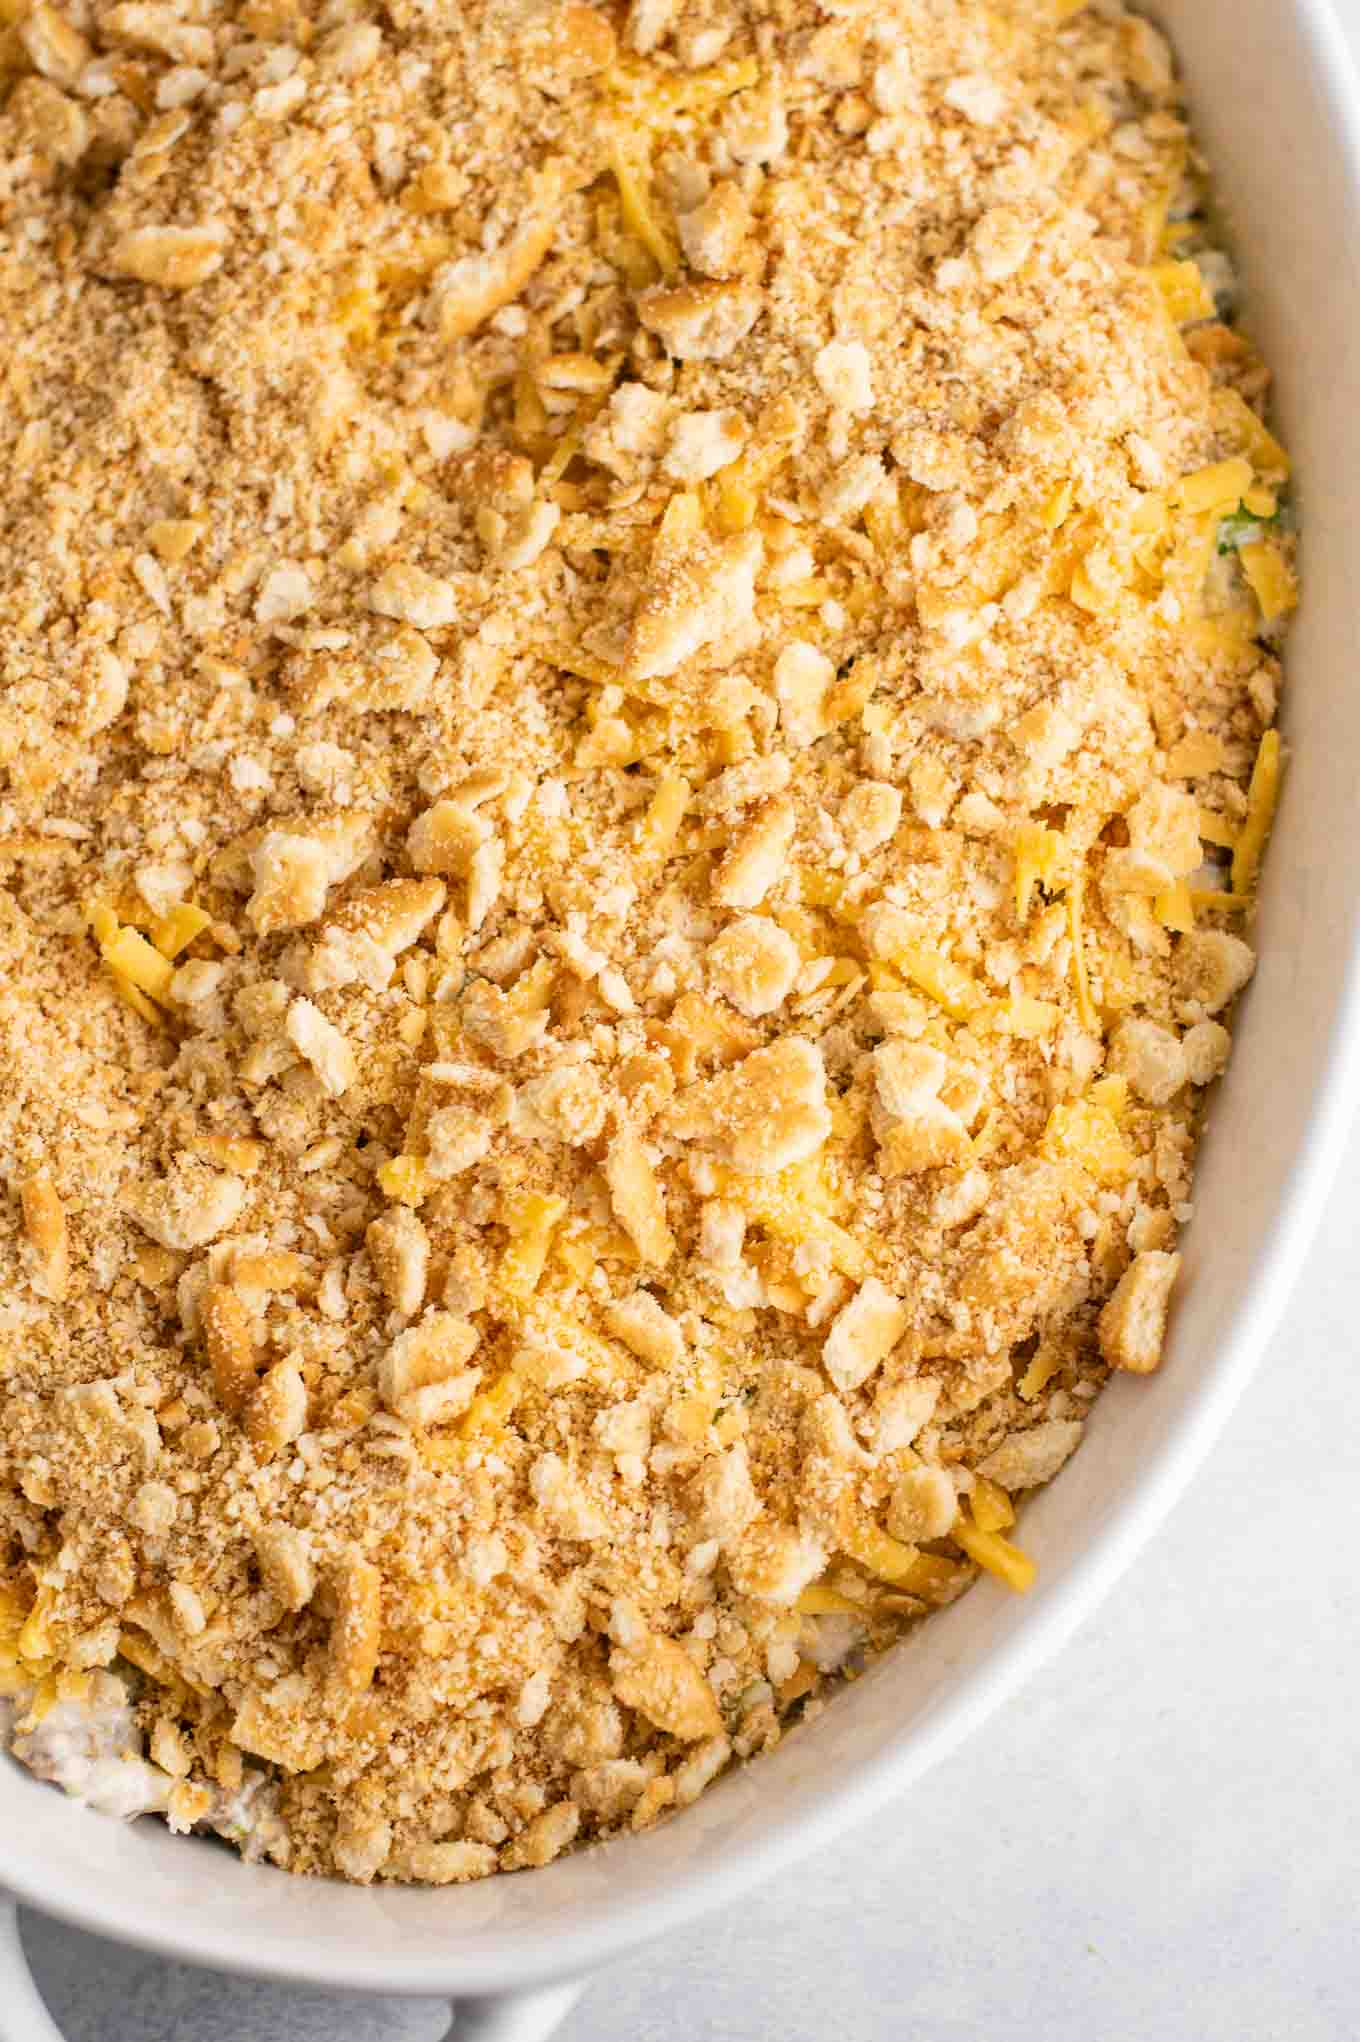 crushed ritz cracker topping on the broccoli casserole